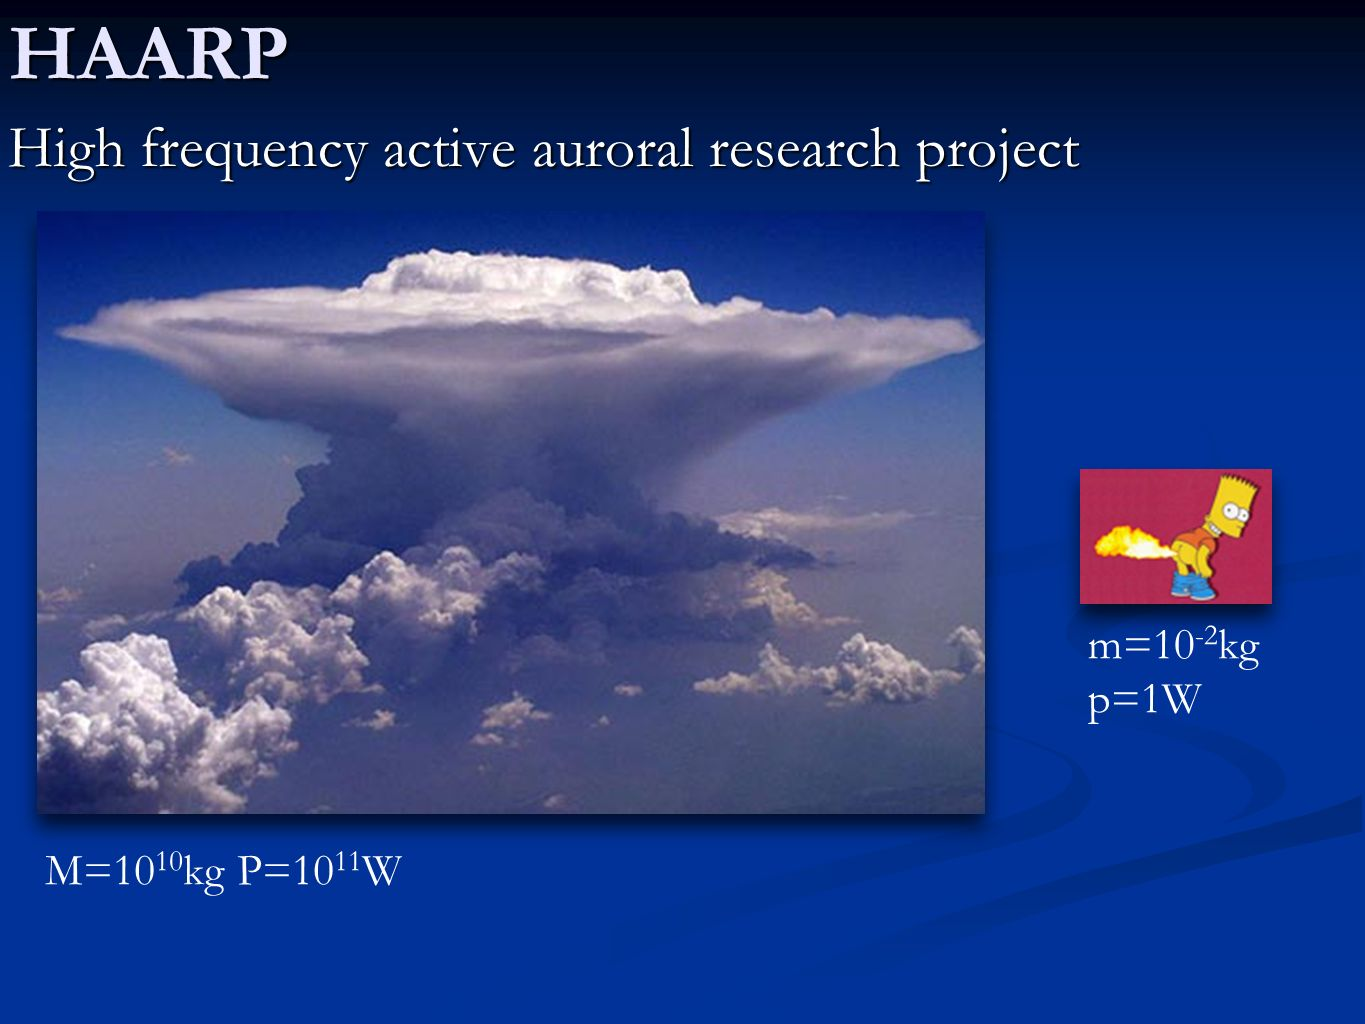 HAARP High frequency active auroral research project M=10 10 kg P=10 11 W m=10 -2 kg p=1W